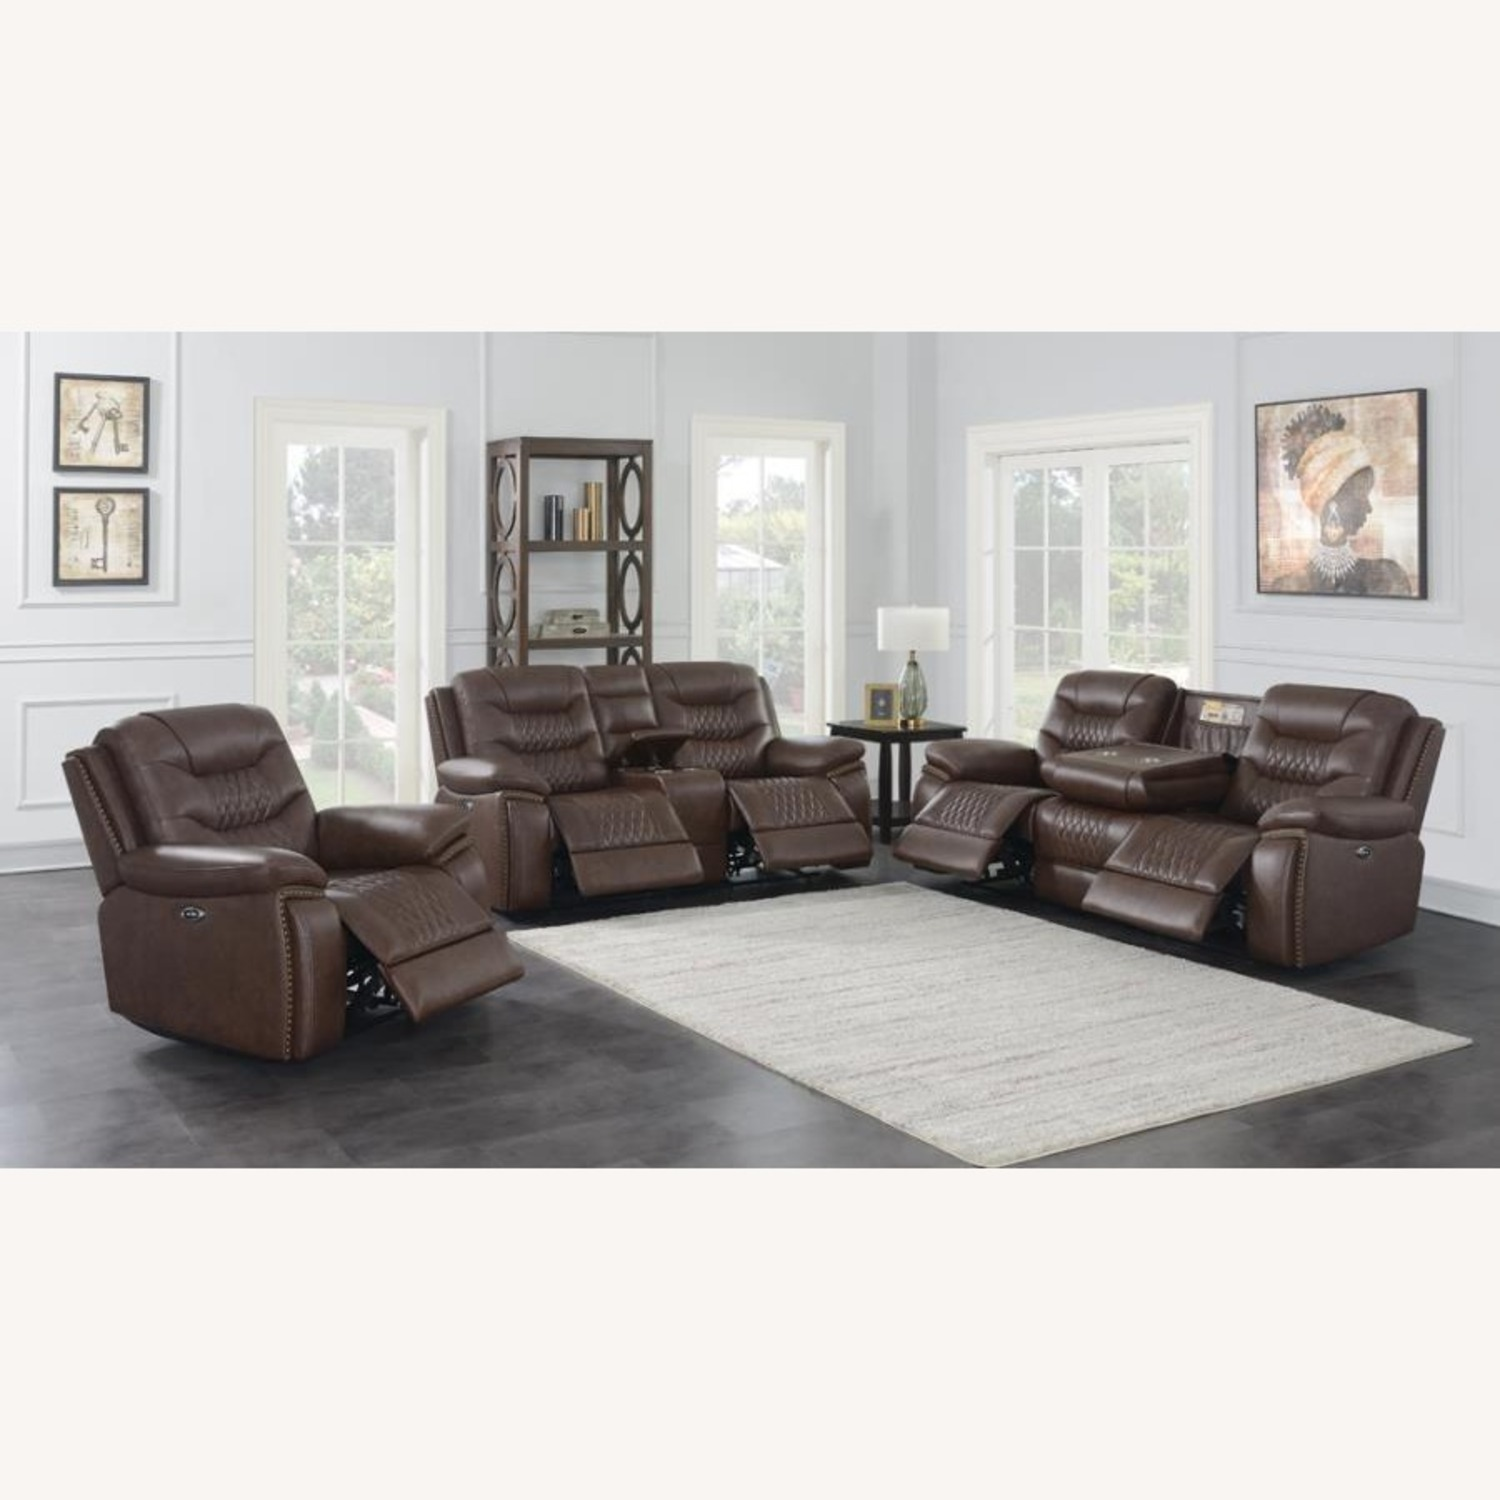 Power Recliner Upholstered In Brown Leatherette - image-4